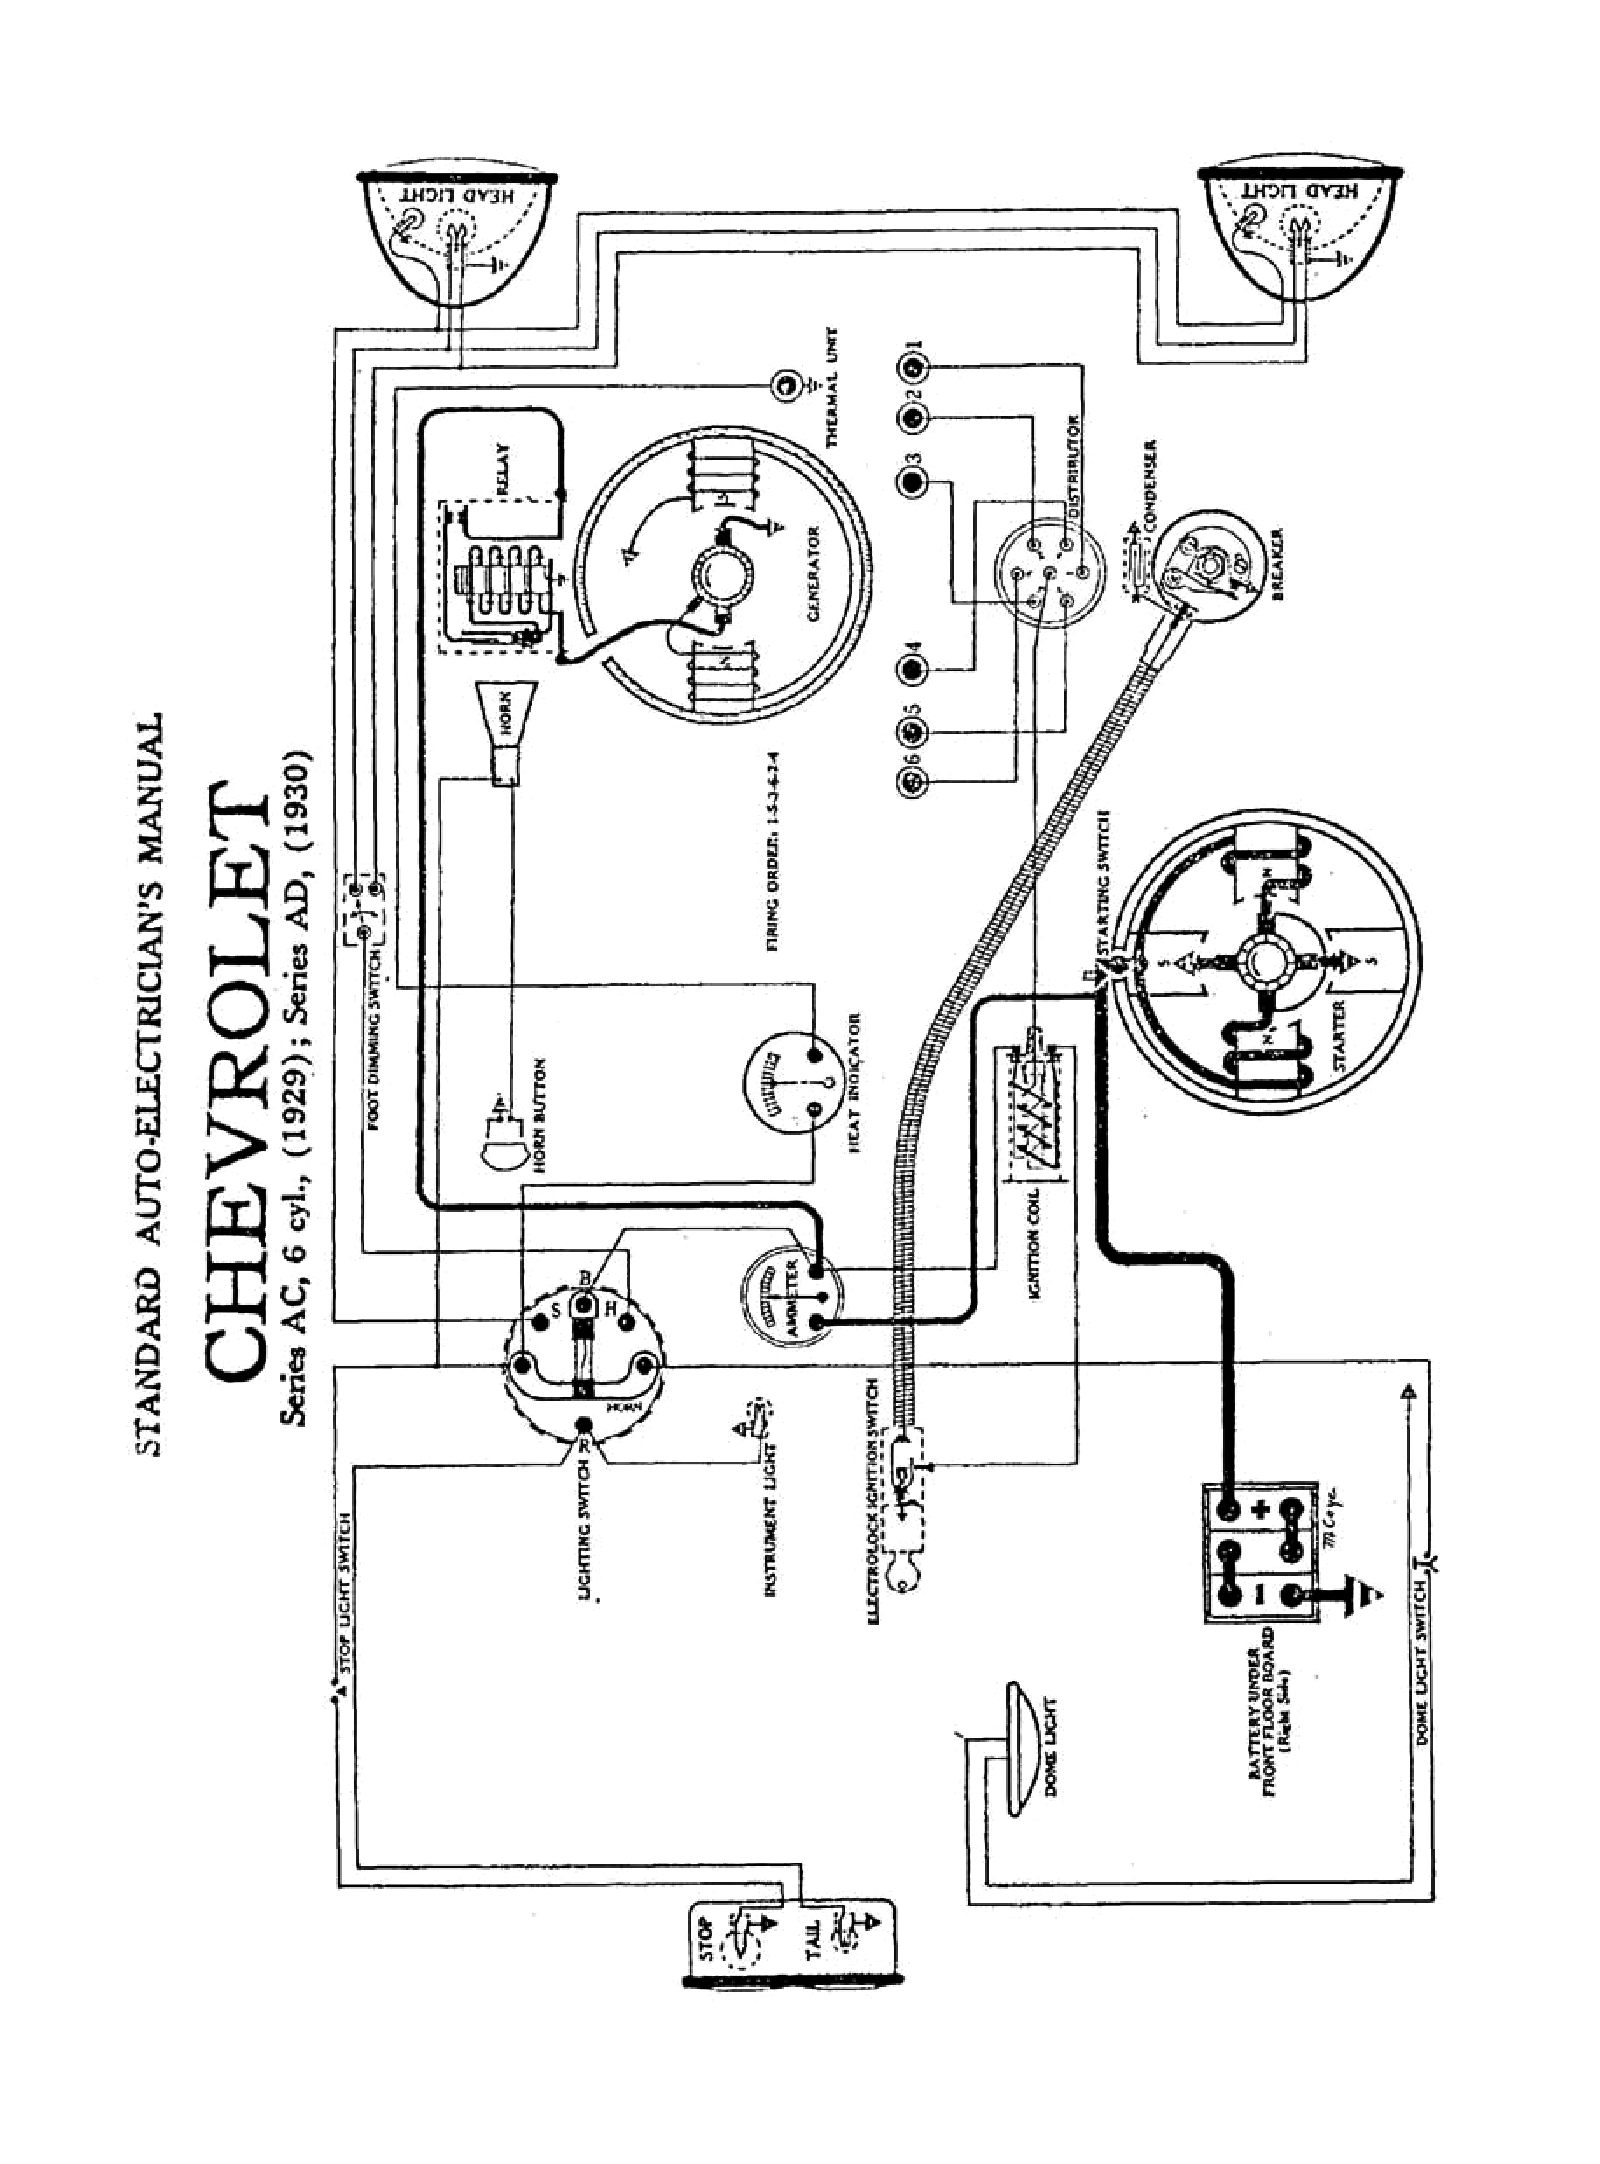 2930wiring chevy wiring diagrams ford model a wiring diagram at readyjetset.co